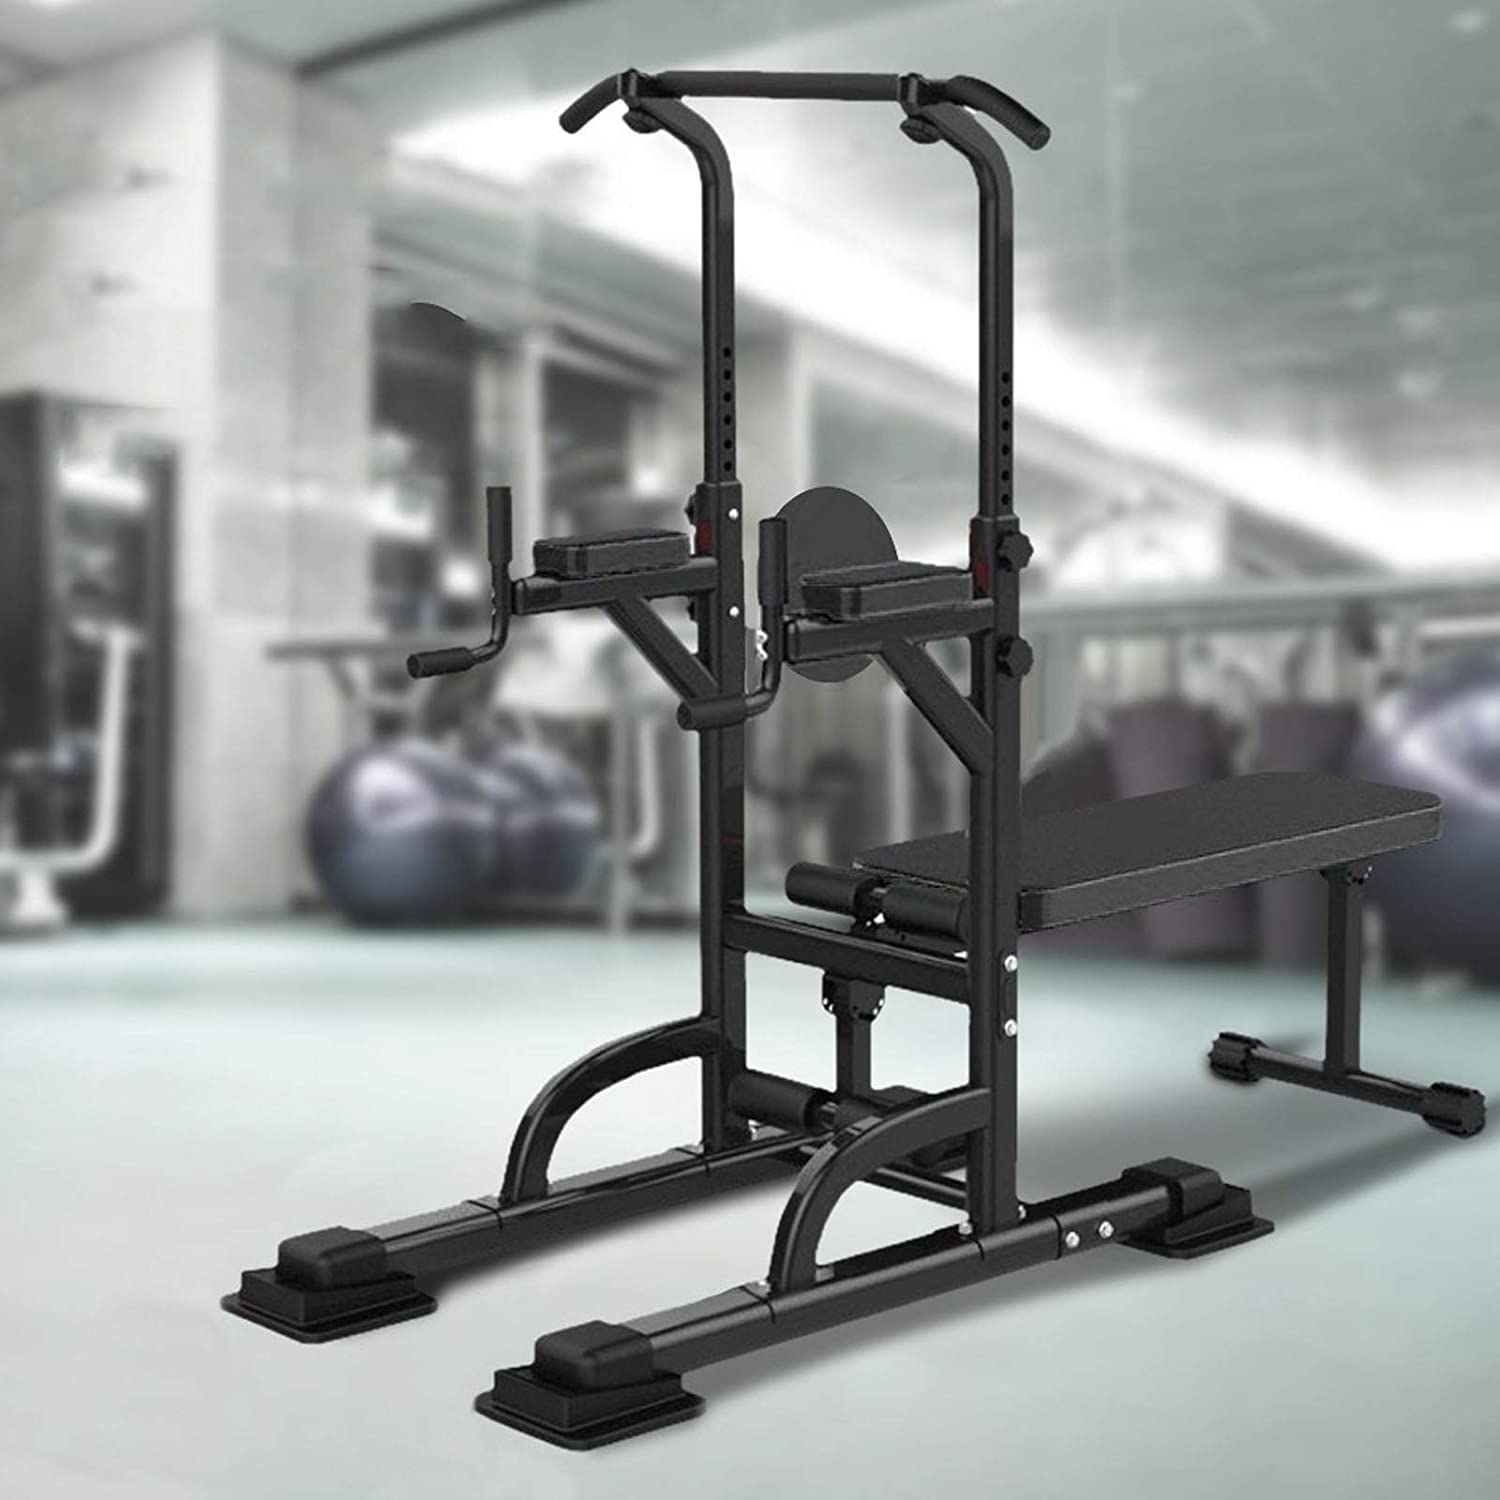 Qianglin Heavy Duty Power Tower Dip Body for Max 73% OFF Station Workou New product!! Full